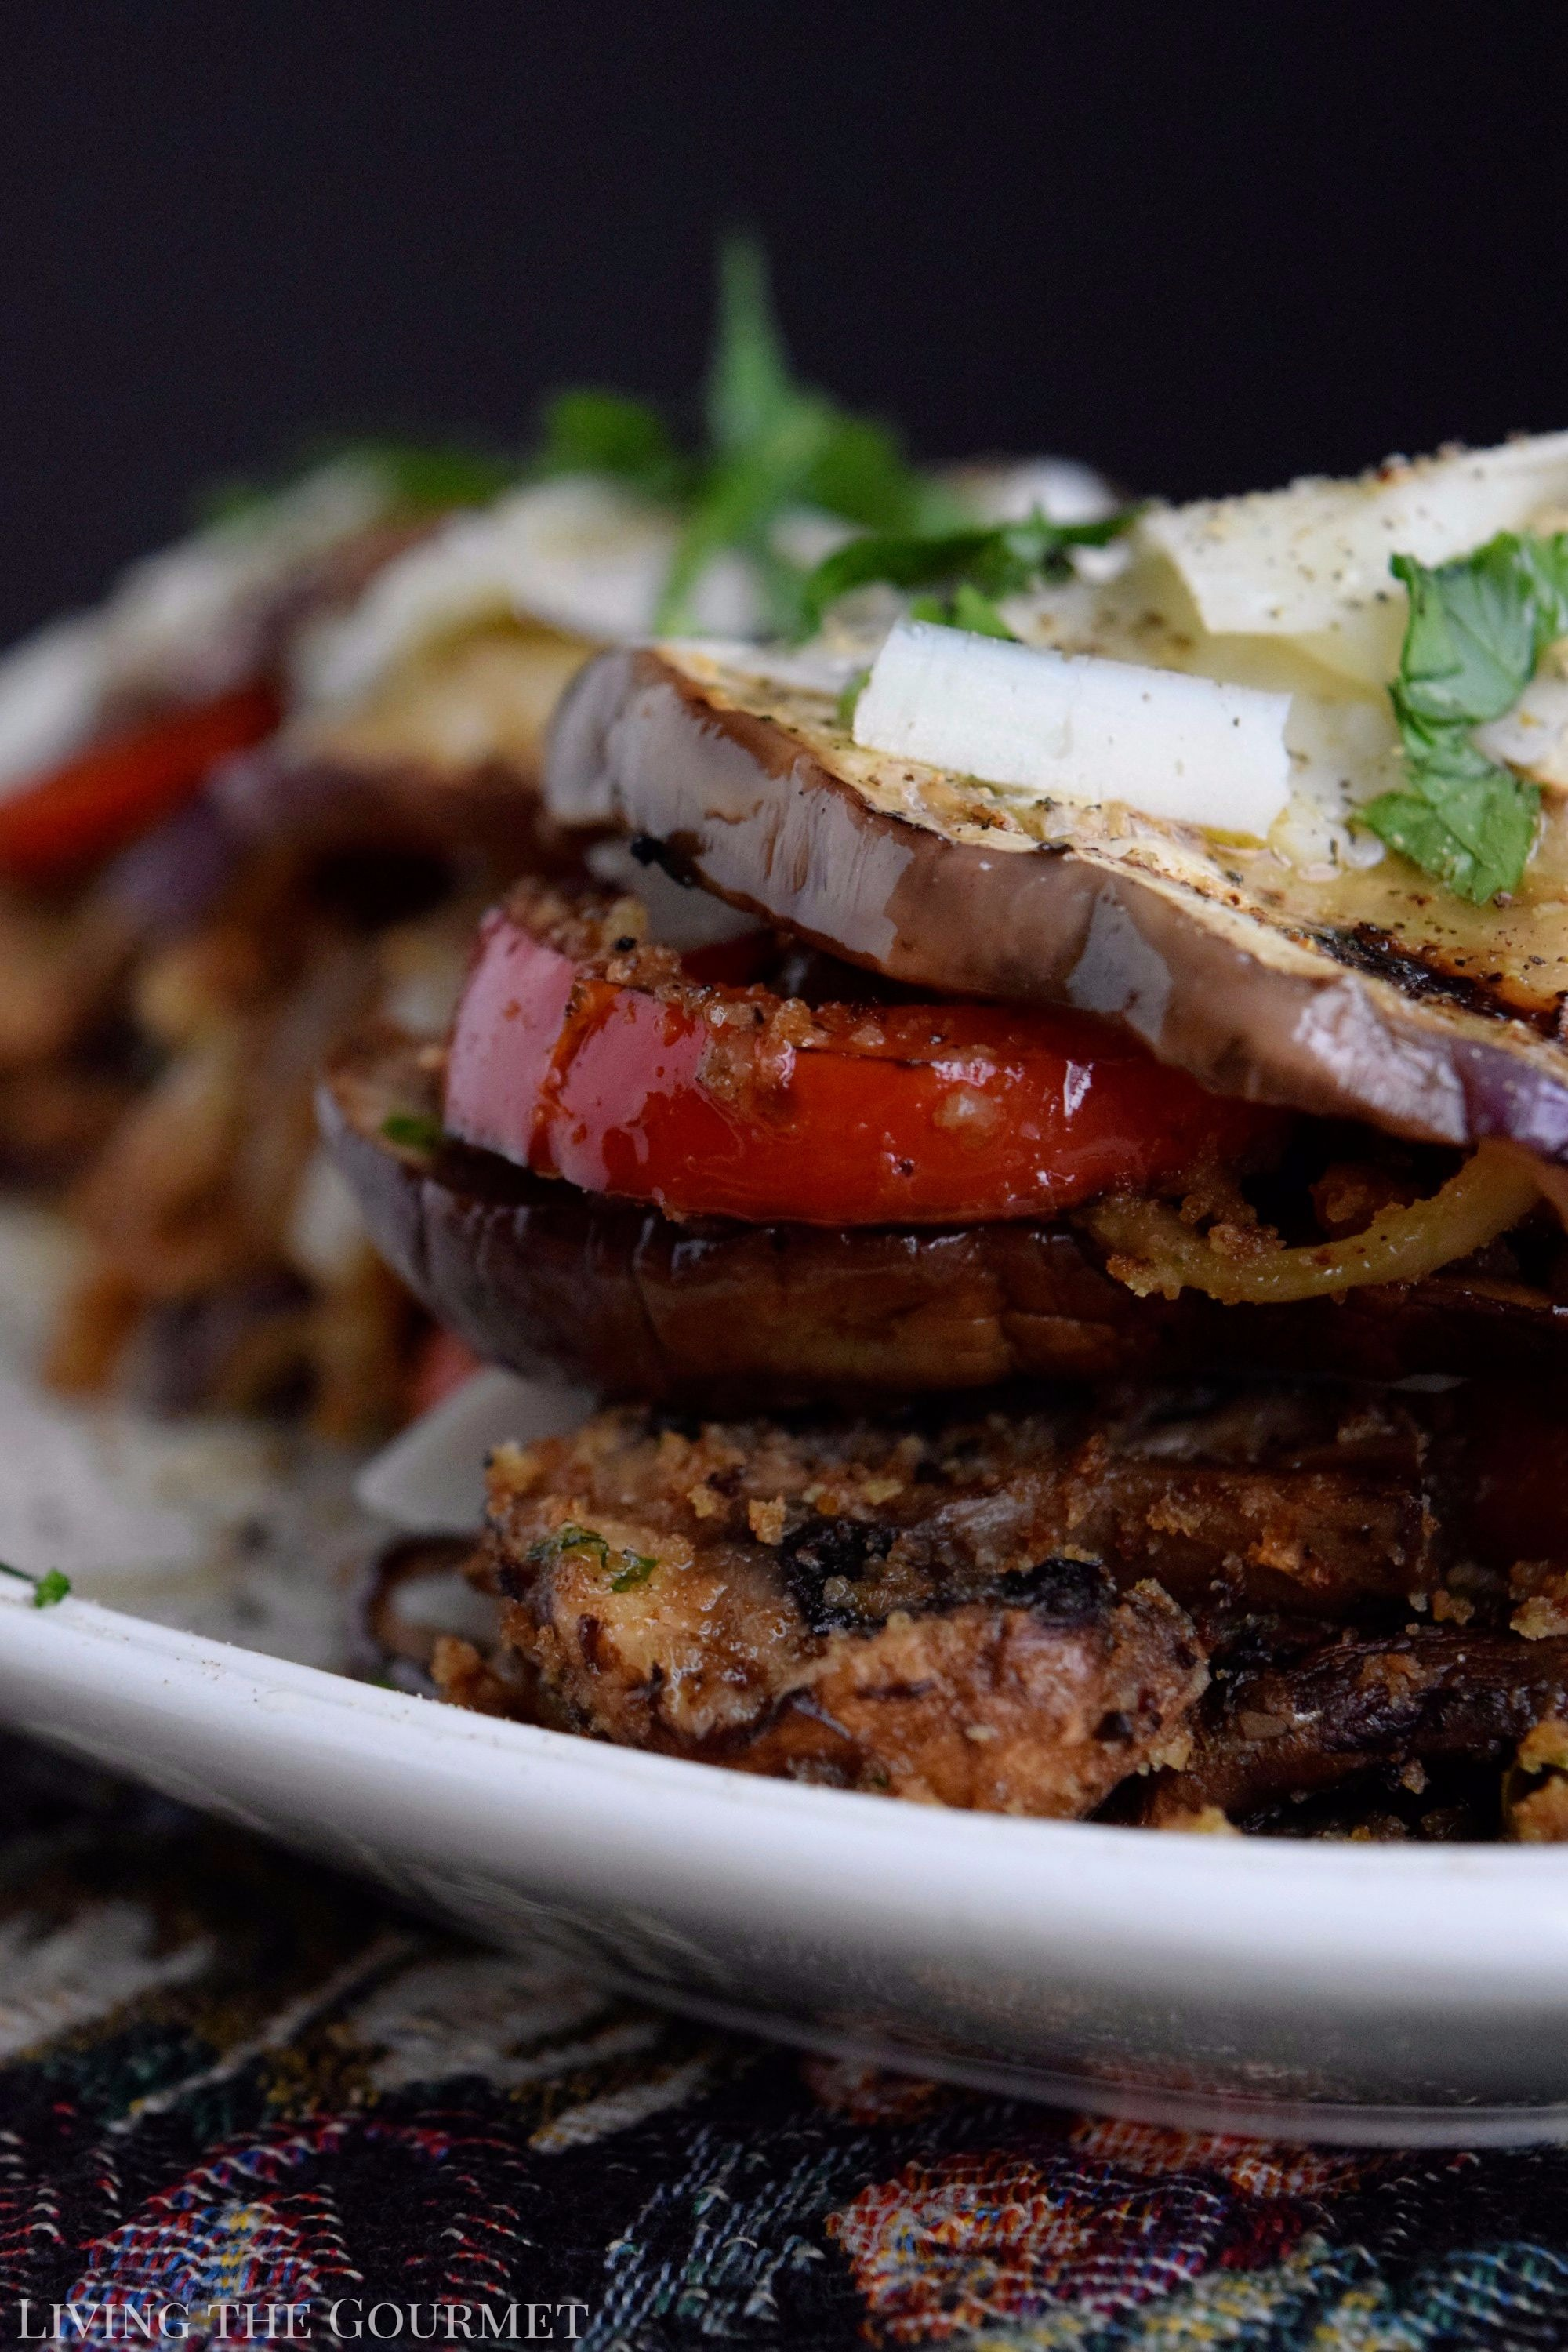 Living the Gourmet: The flavors of the Old World Mediterranean get a modern twist with these elegant Eggplant Stacks!